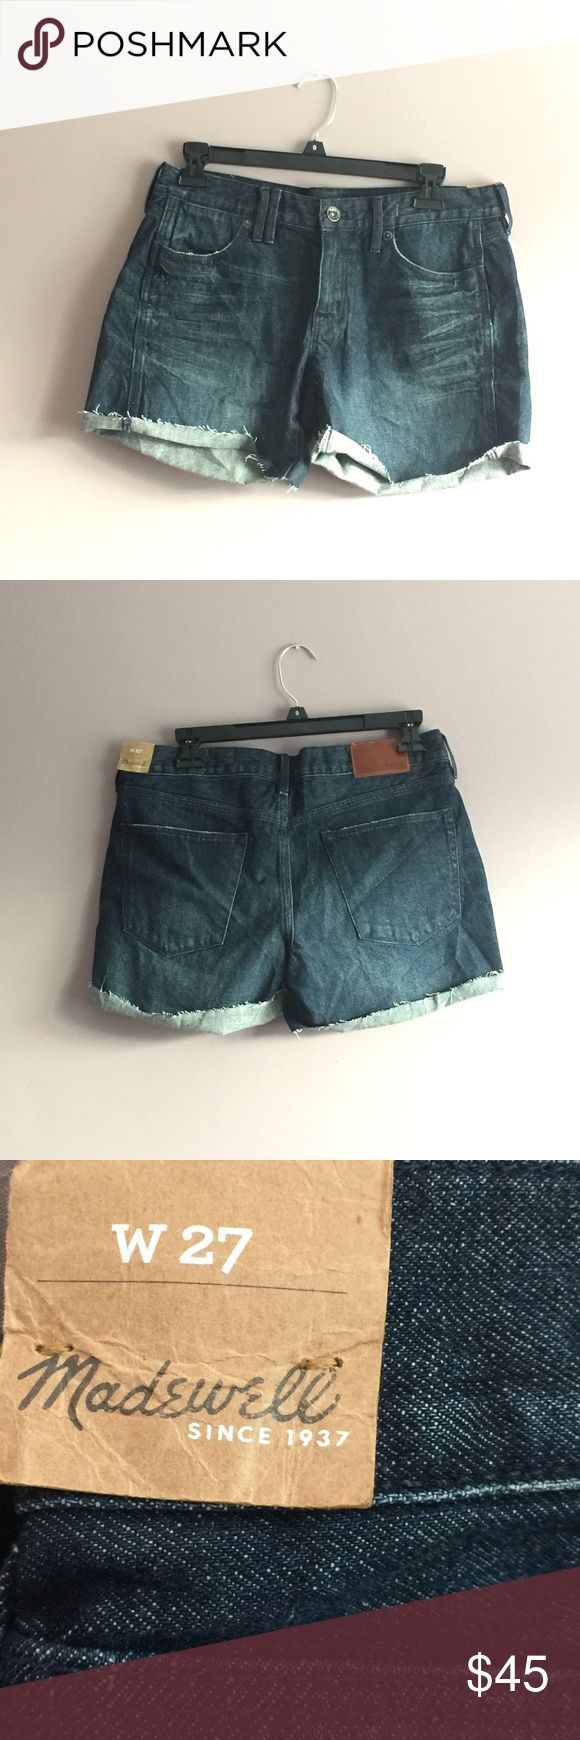 PRICE DROP NWT Madewell Women's Blue Jean Shorts High quality Madewell Jean Shorts with a dark wash that will last for years! These shorts are 100% cotton with a height of 14 inches, width of 18 inches and the zipper zips down 3 inches. These shorts have never been worn before and still include their original tags. They fit looser than a regular 4 and more closely resemble a size 6. Madewell Jeans